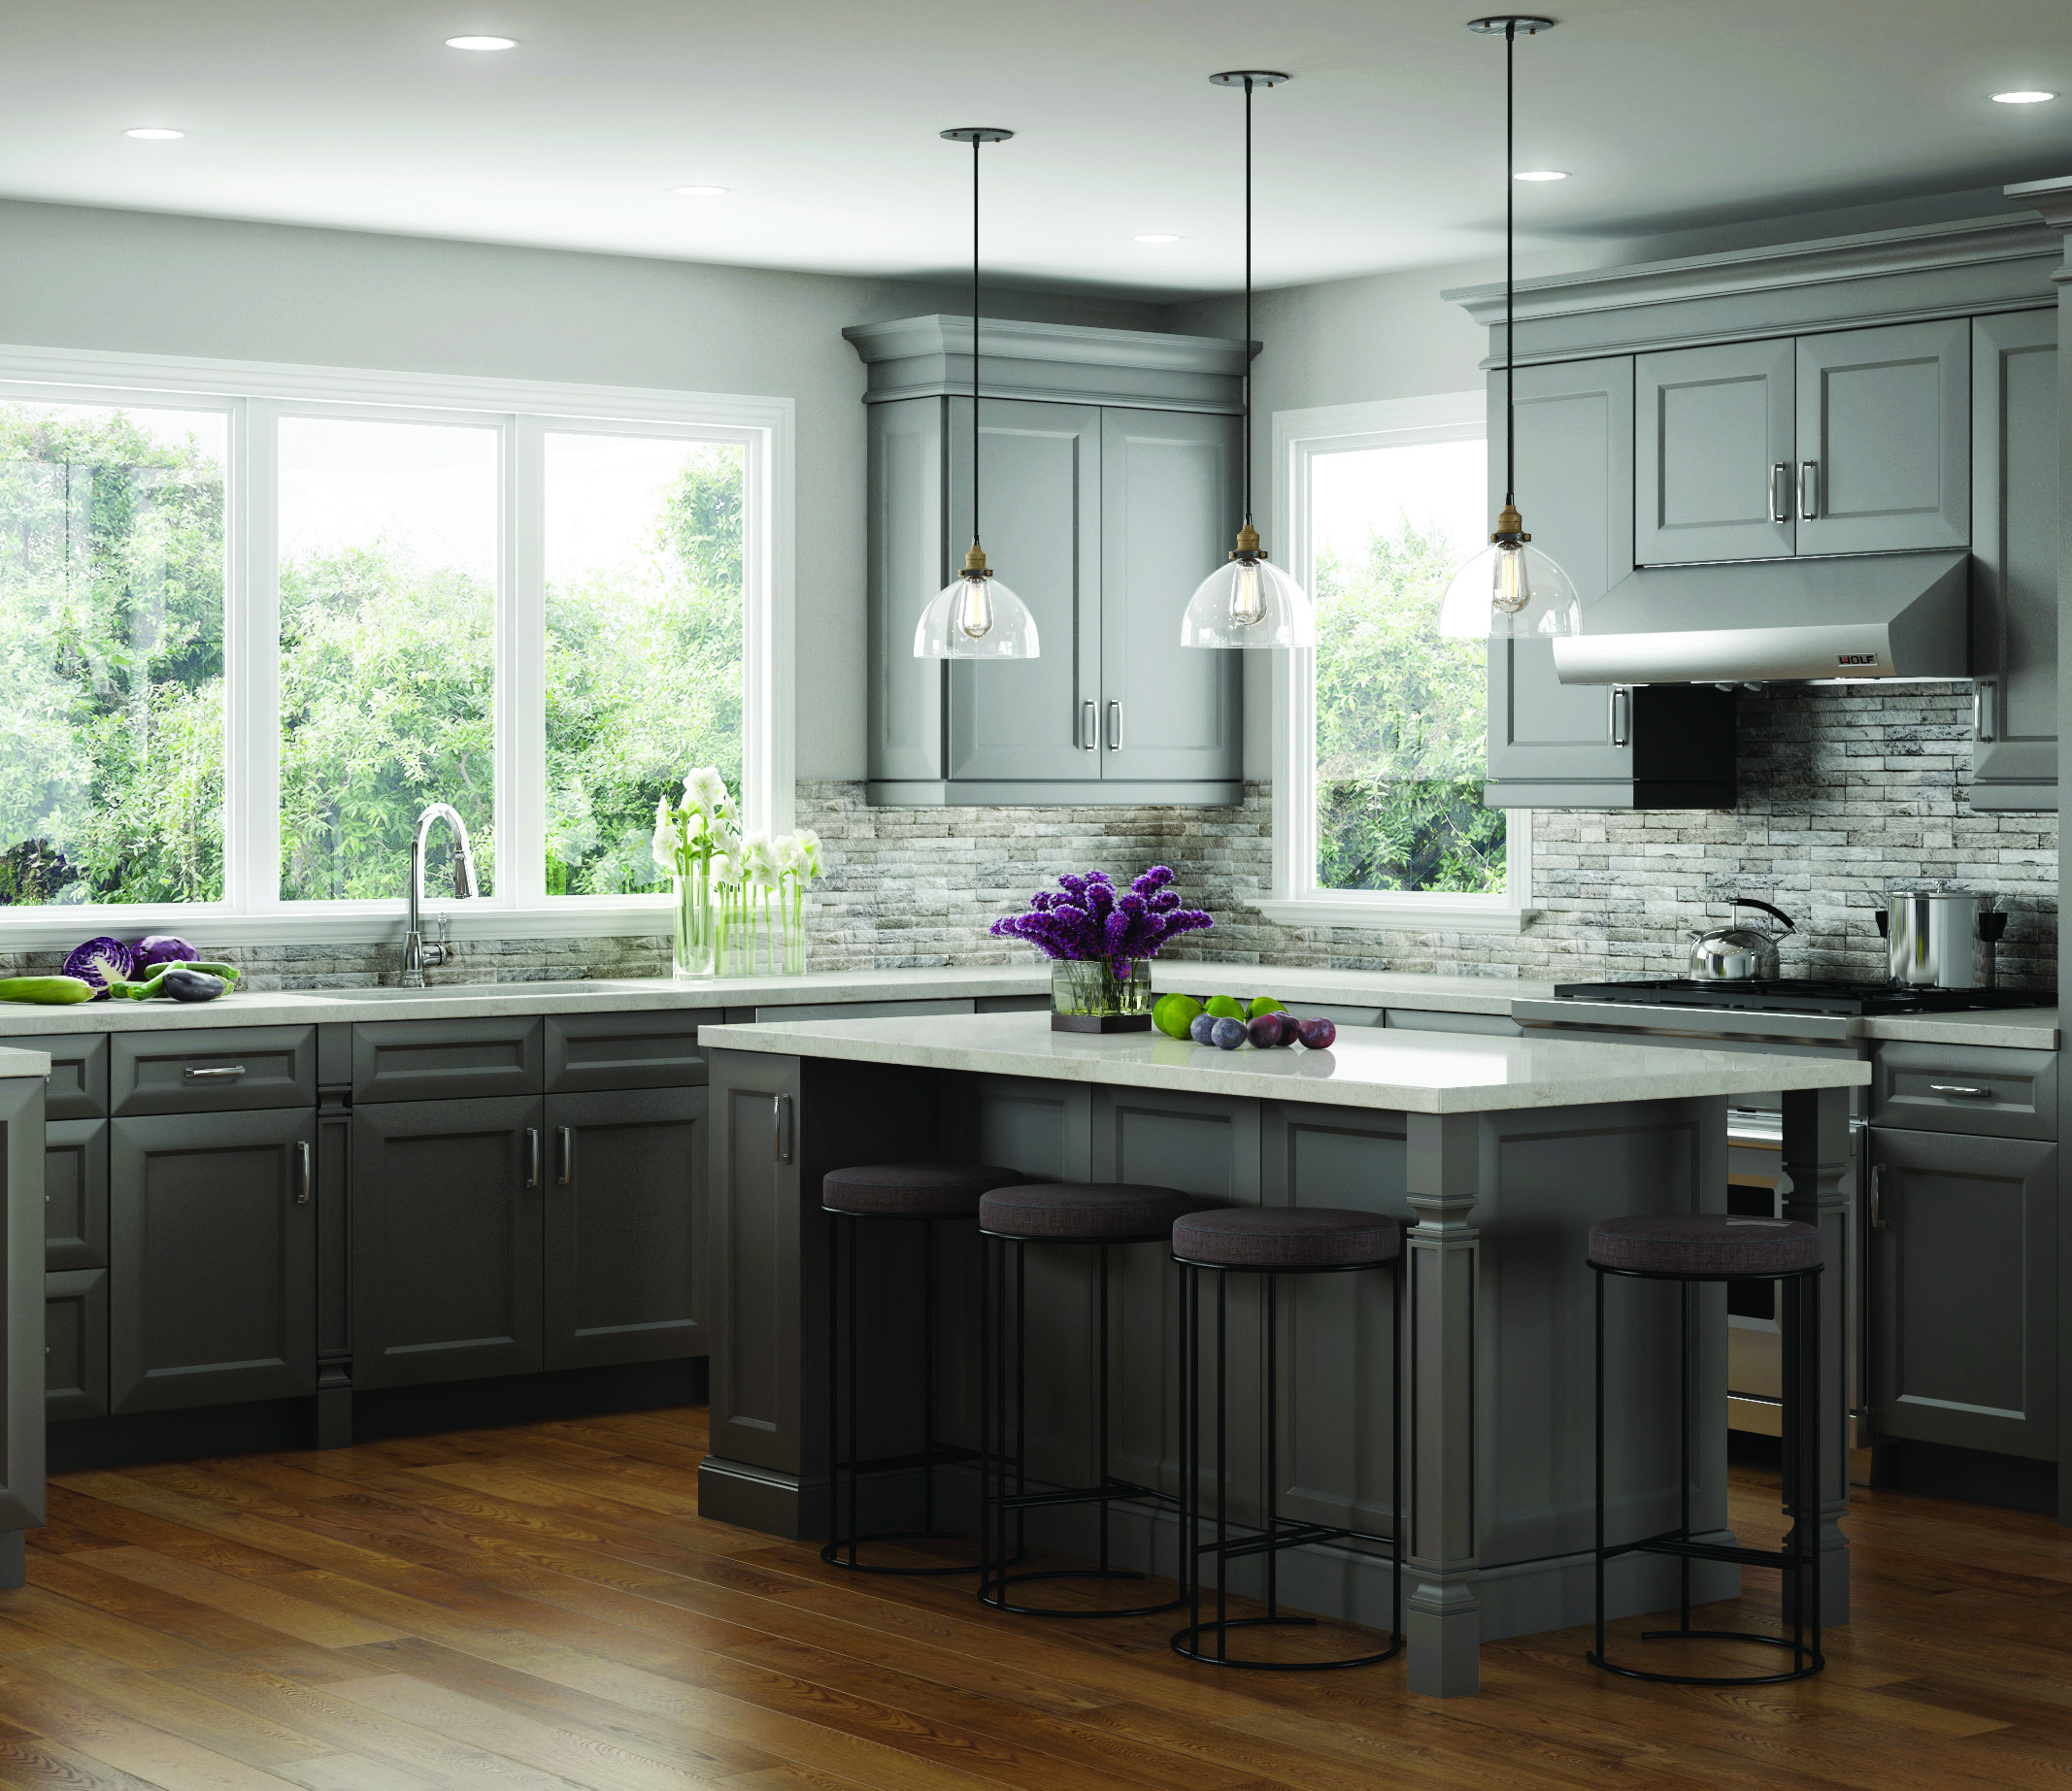 Dream Kitchen And Bath: Kitchen And Bath Remodeling